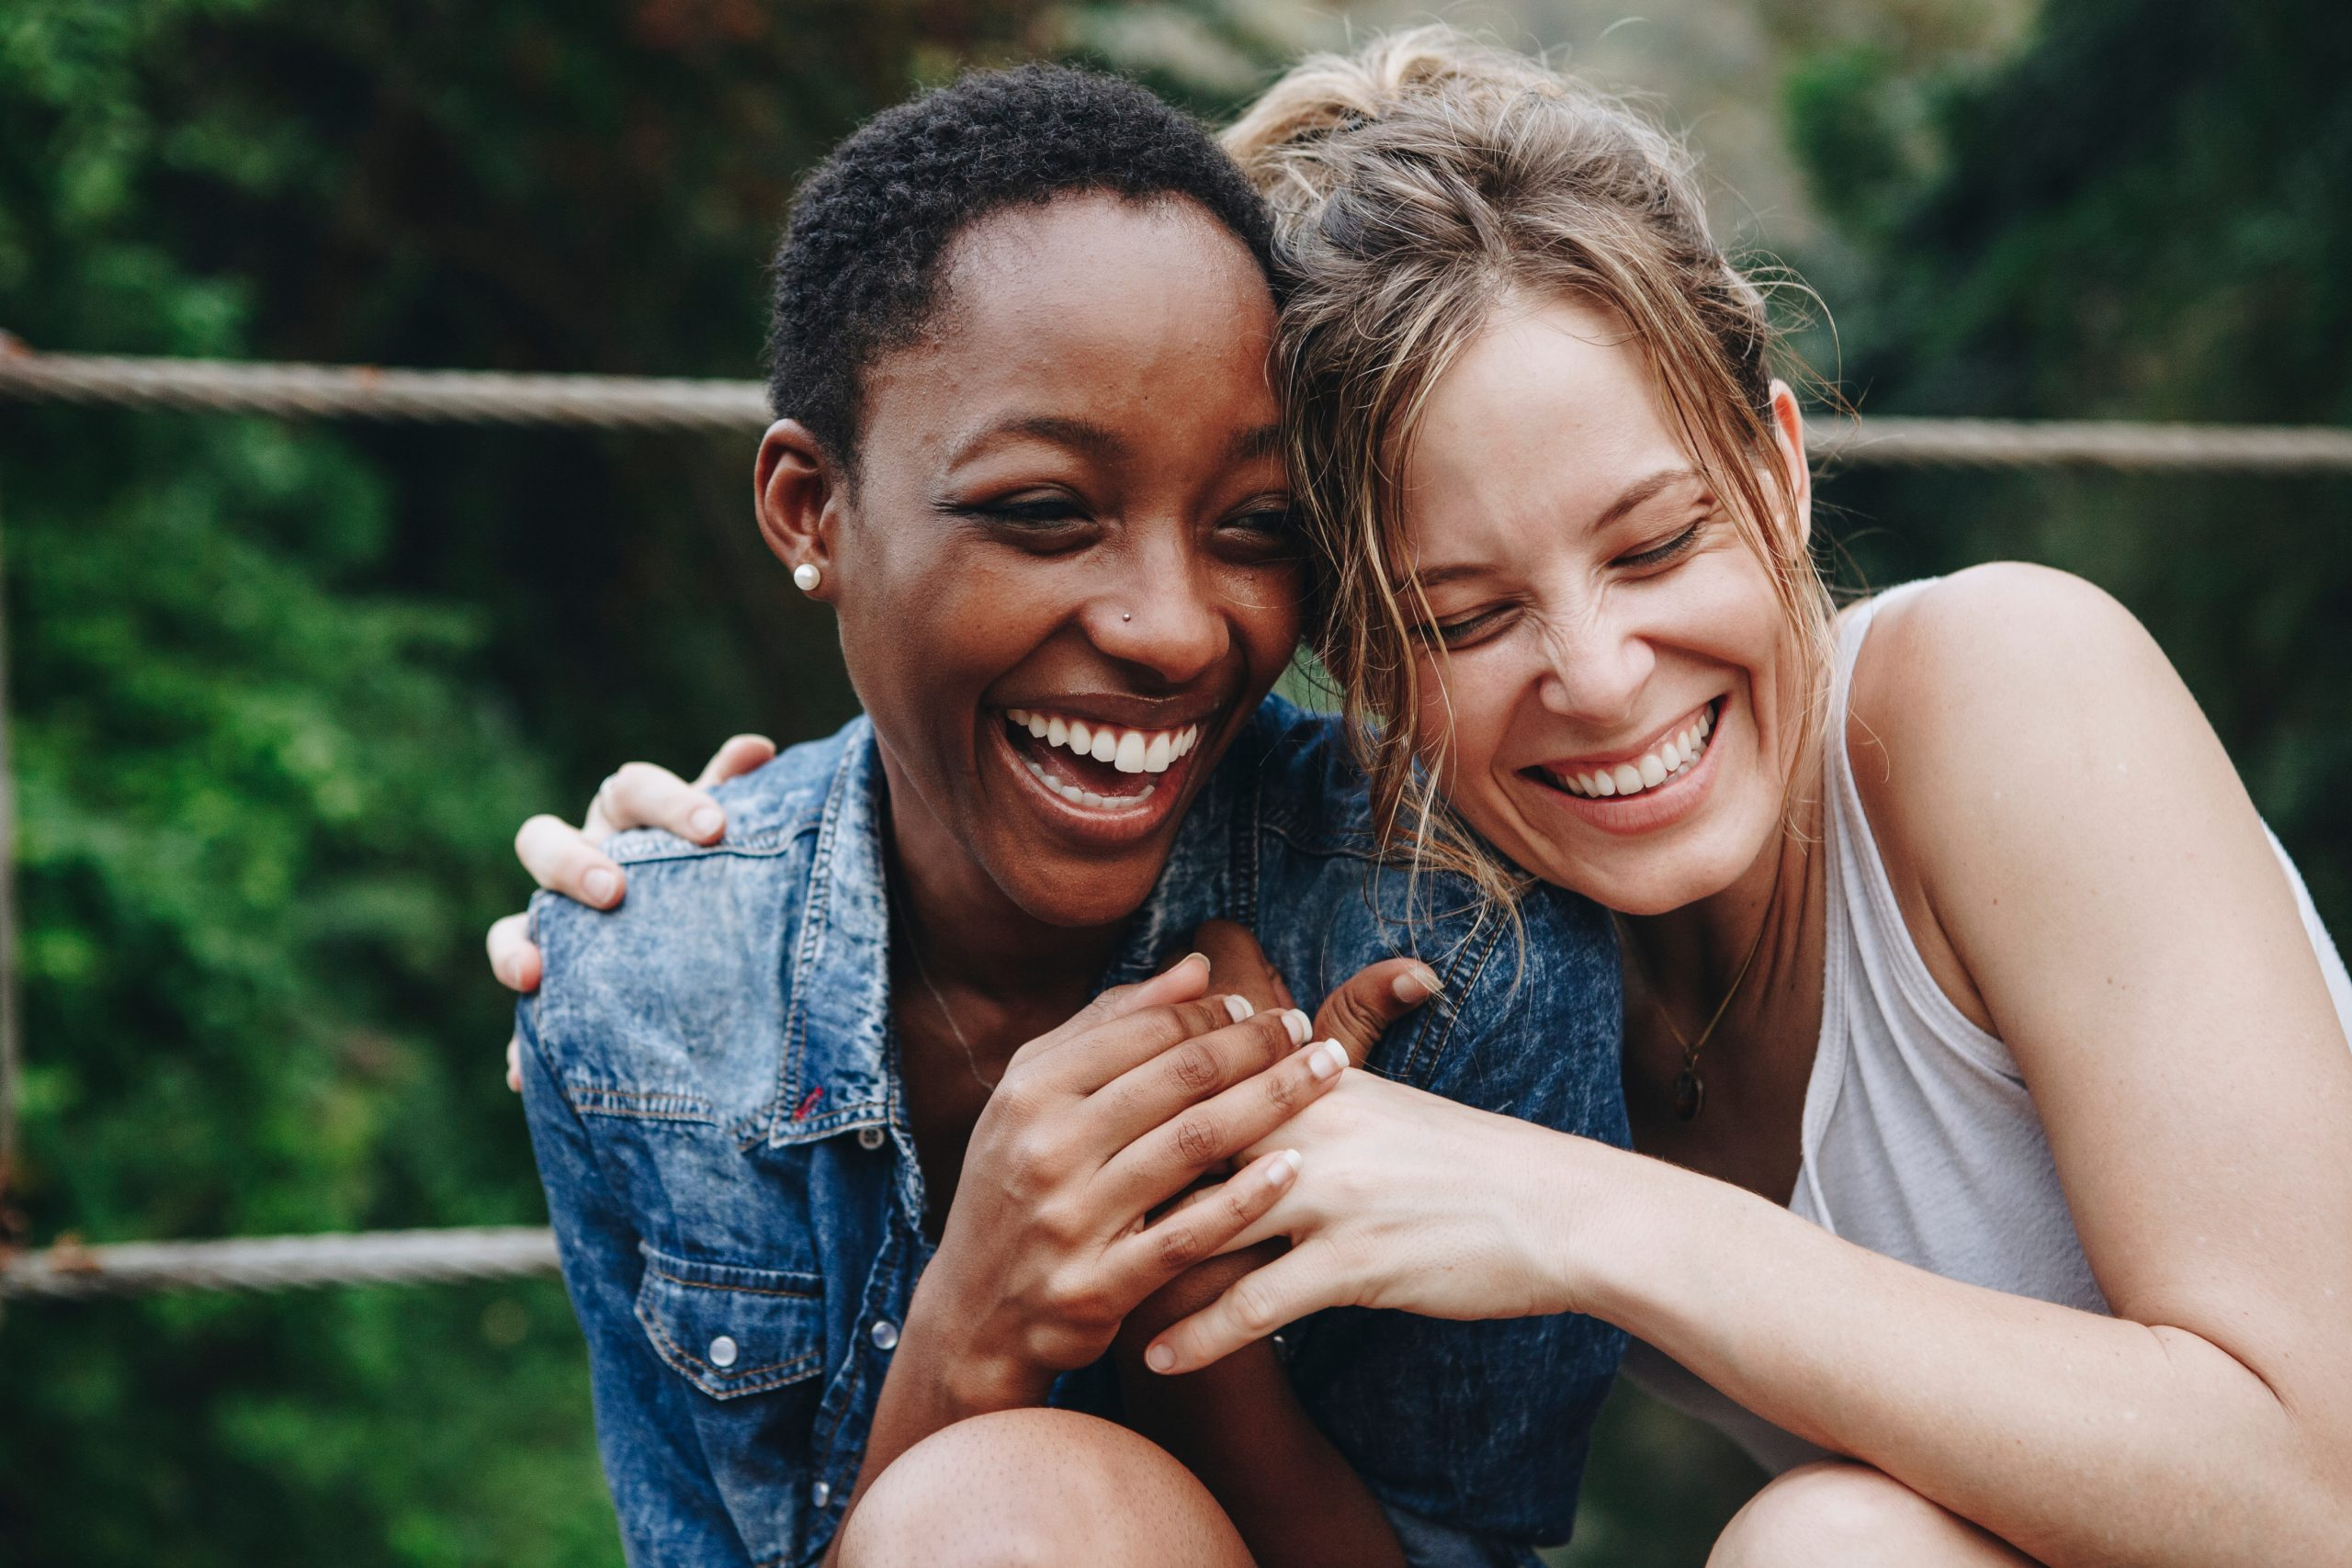 two women laughing and embracing